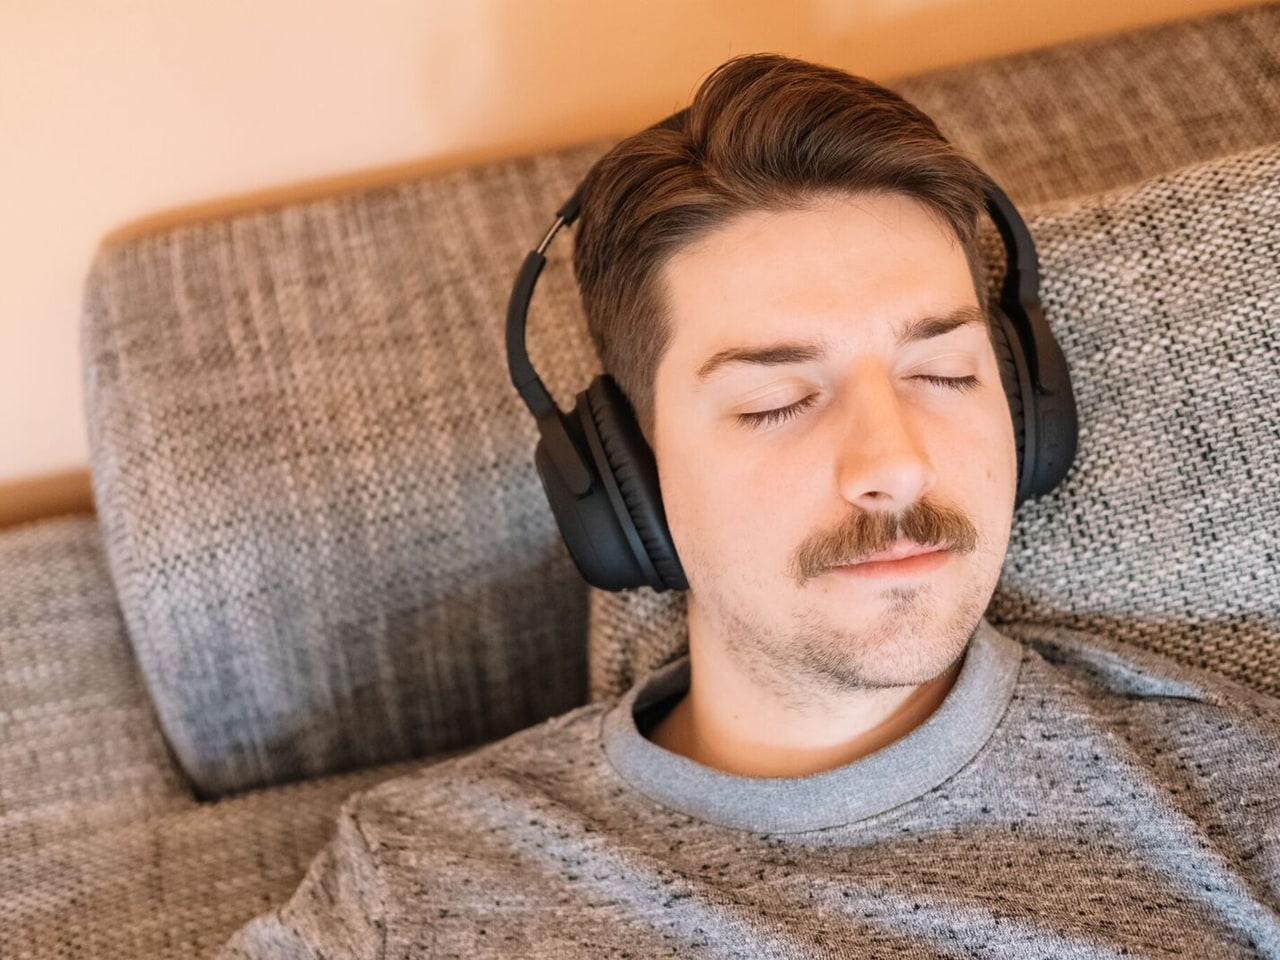 Slip into slumber with music optimized for your unique brain activity. Perfected to help you easily drift off to sleep, this mode can also gently wake you up feeling fully rejuvenated and refreshed.